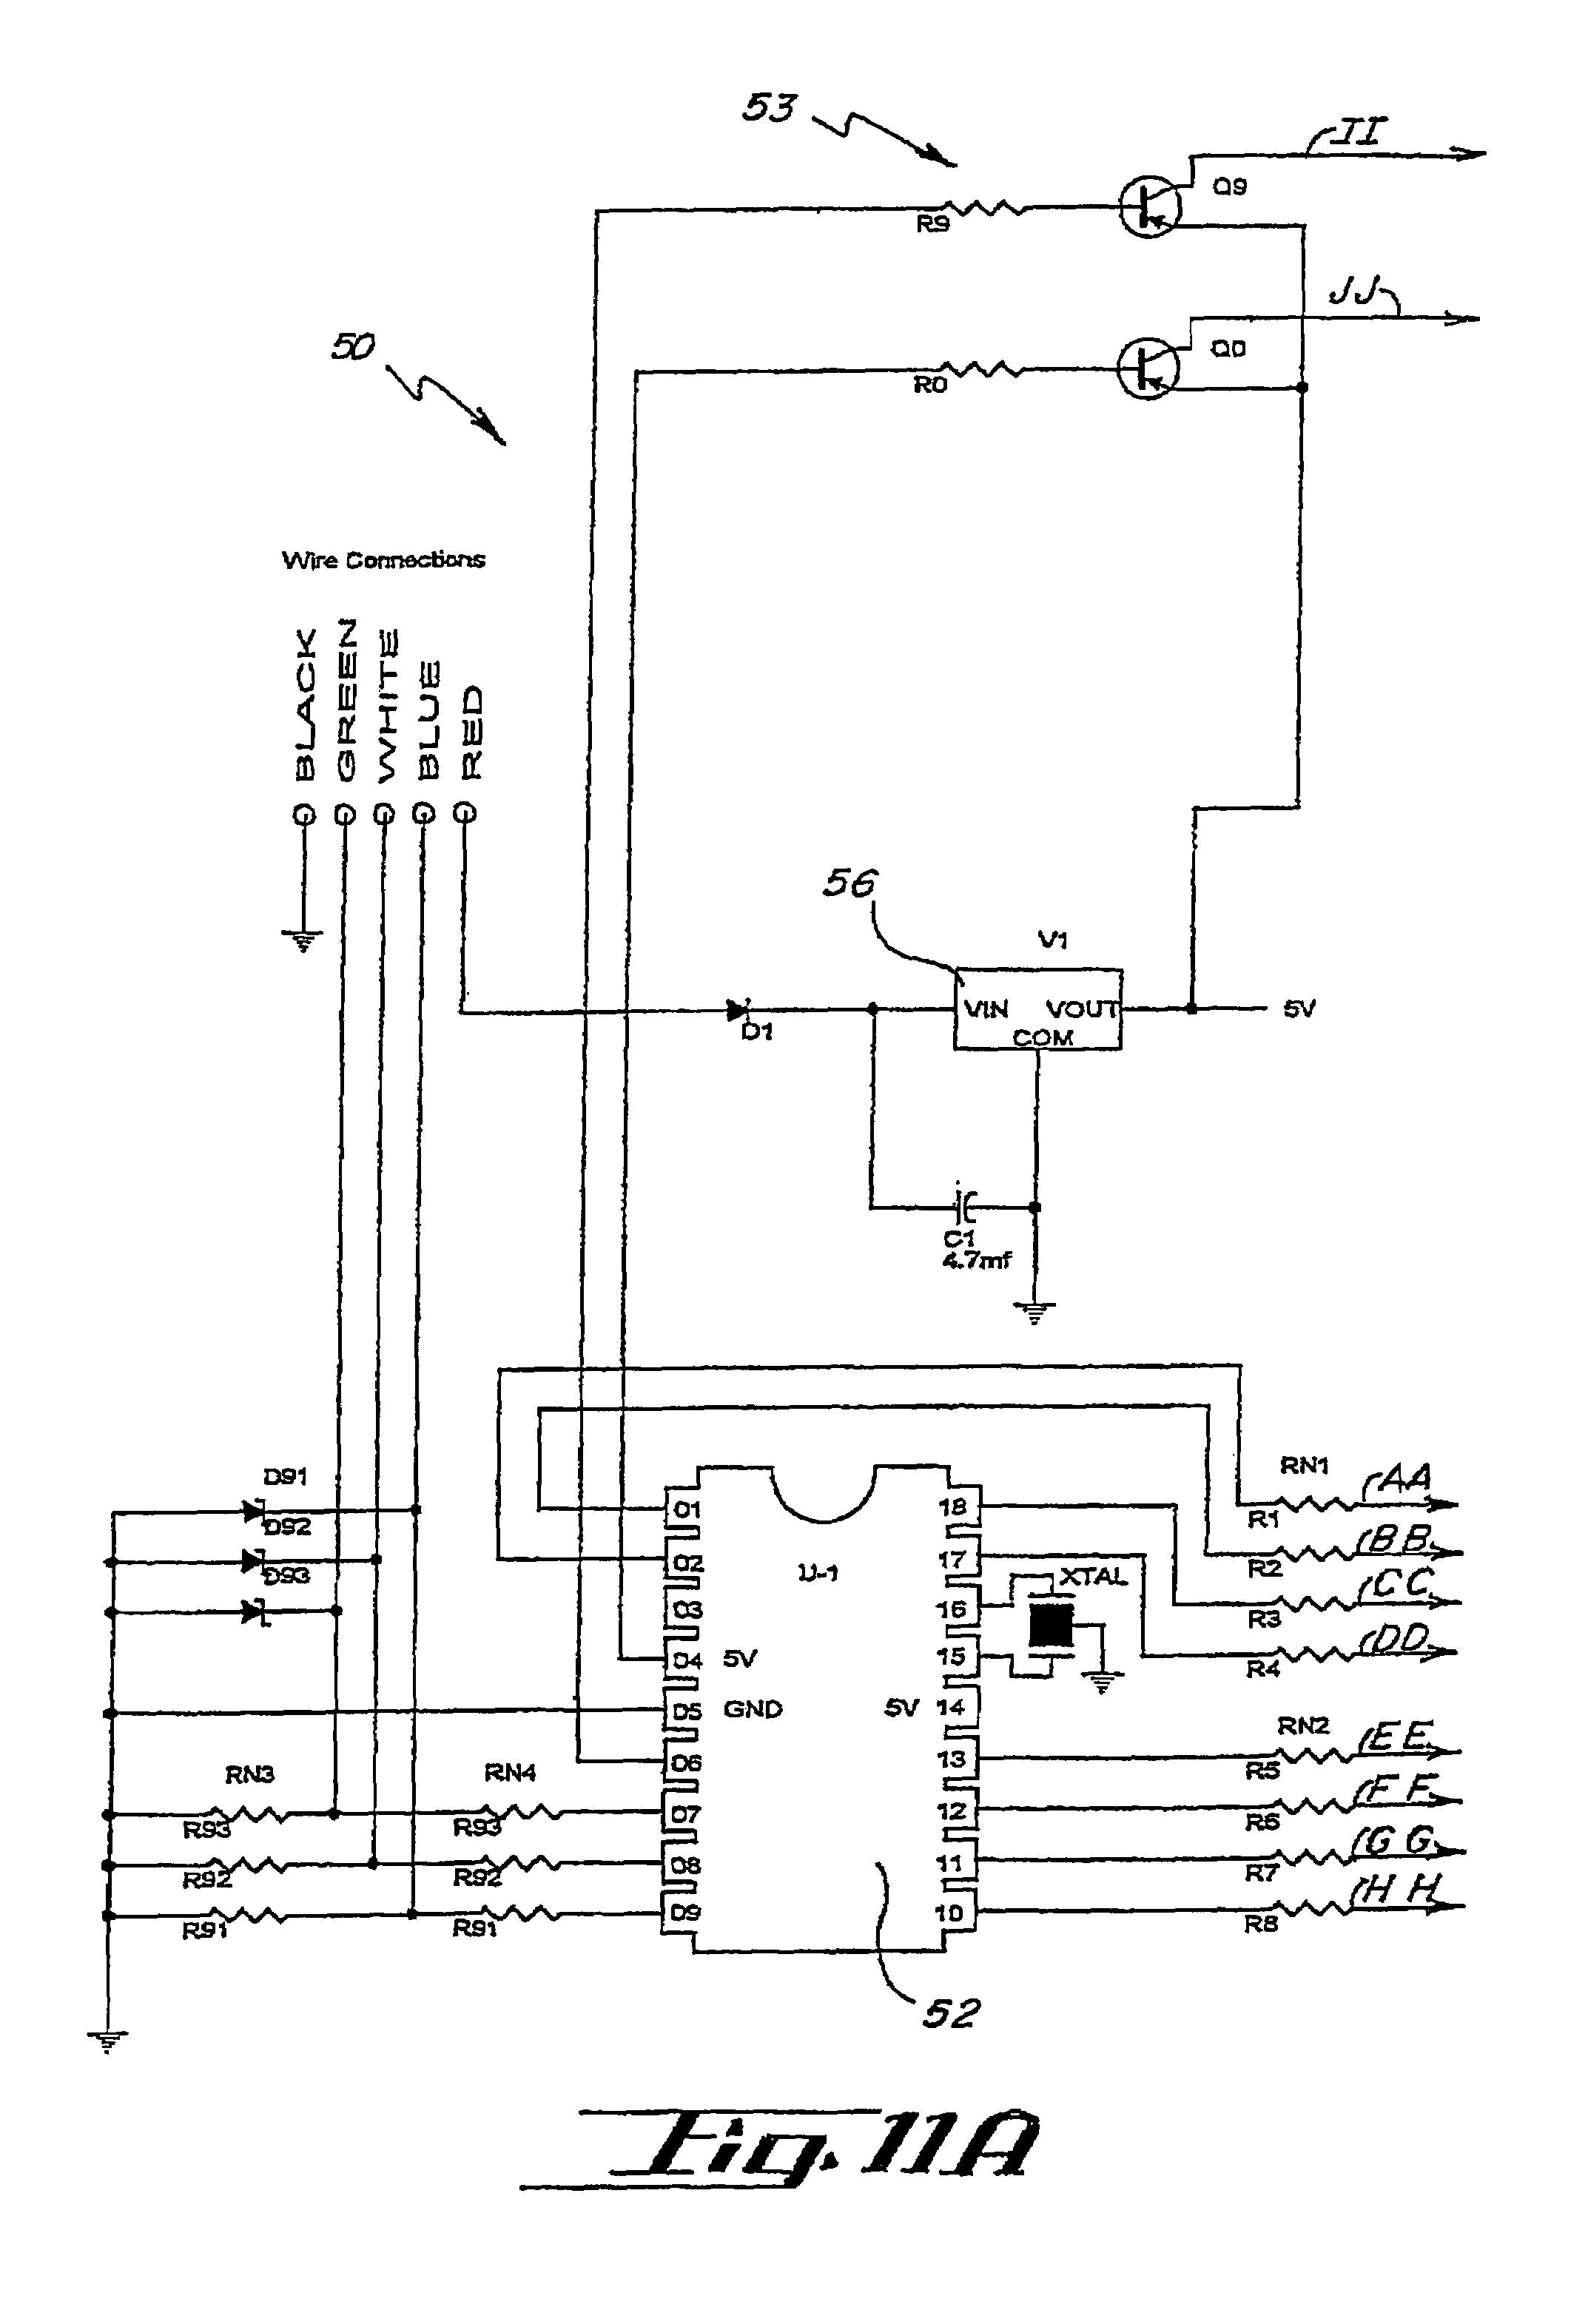 best of wiring diagram for shop lights diagrams digramssamplebest of wiring diagram for shop lights diagrams [ 2146 x 3141 Pixel ]